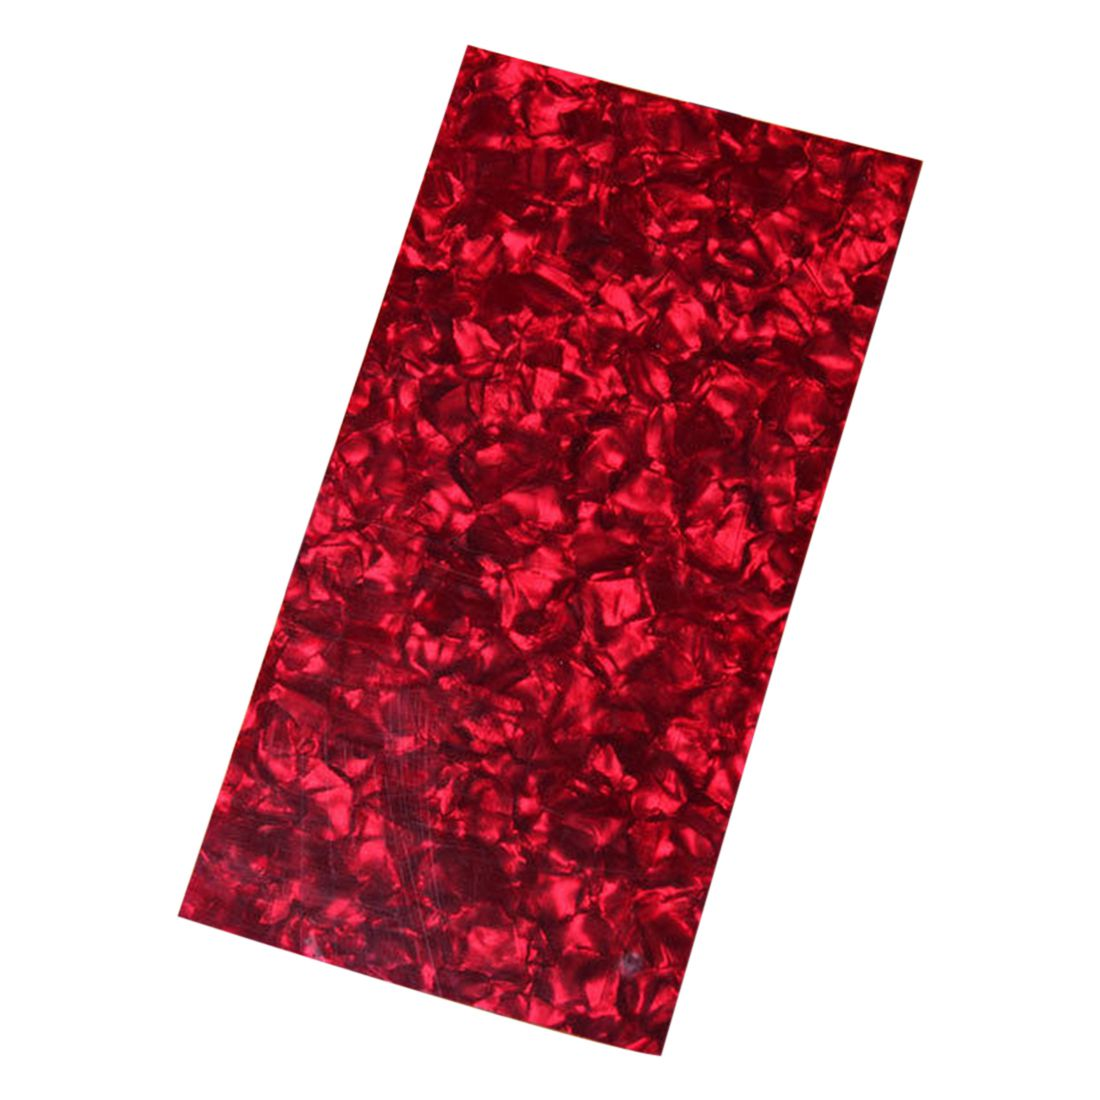 NEW RED Celluloid Guitar Head Veneer Shell Sheet Guitar Parts 20*10*0.7cm Gift 42 inch sapele veneer wood guitar veneer acoustic guitar technique of lacquer bake dumb light suitable for teaching performance